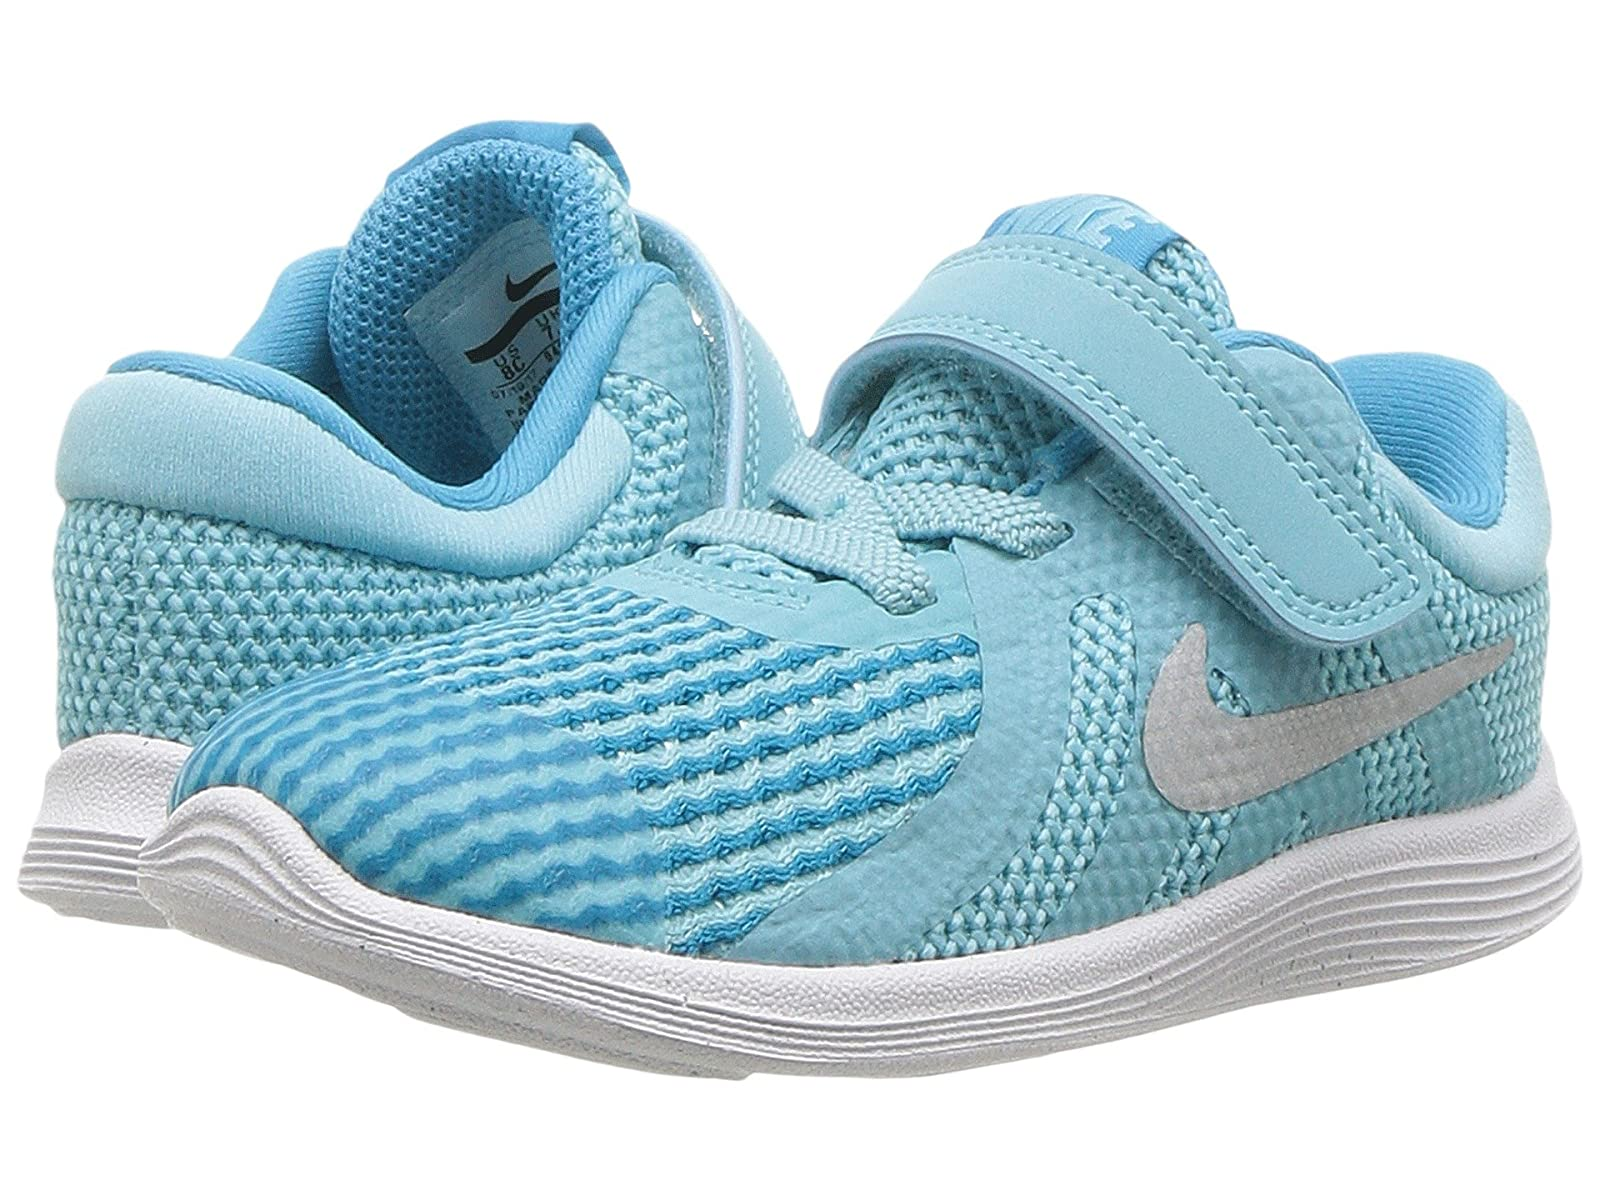 Nike Kids Revolution 4 (Infant/Toddler)Atmospheric grades have affordable shoes